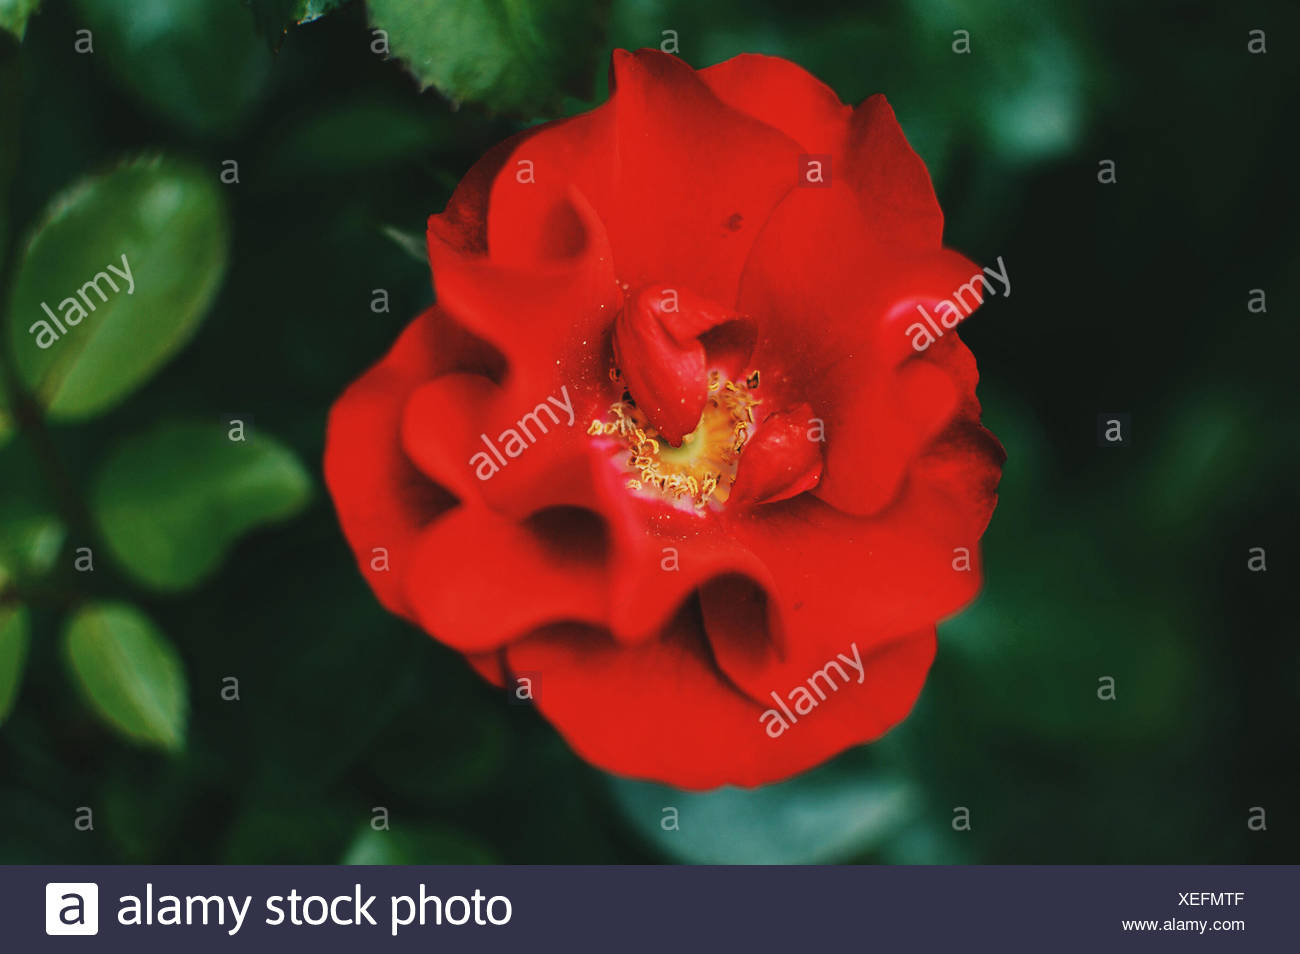 Close-up of red rose - Stock Image